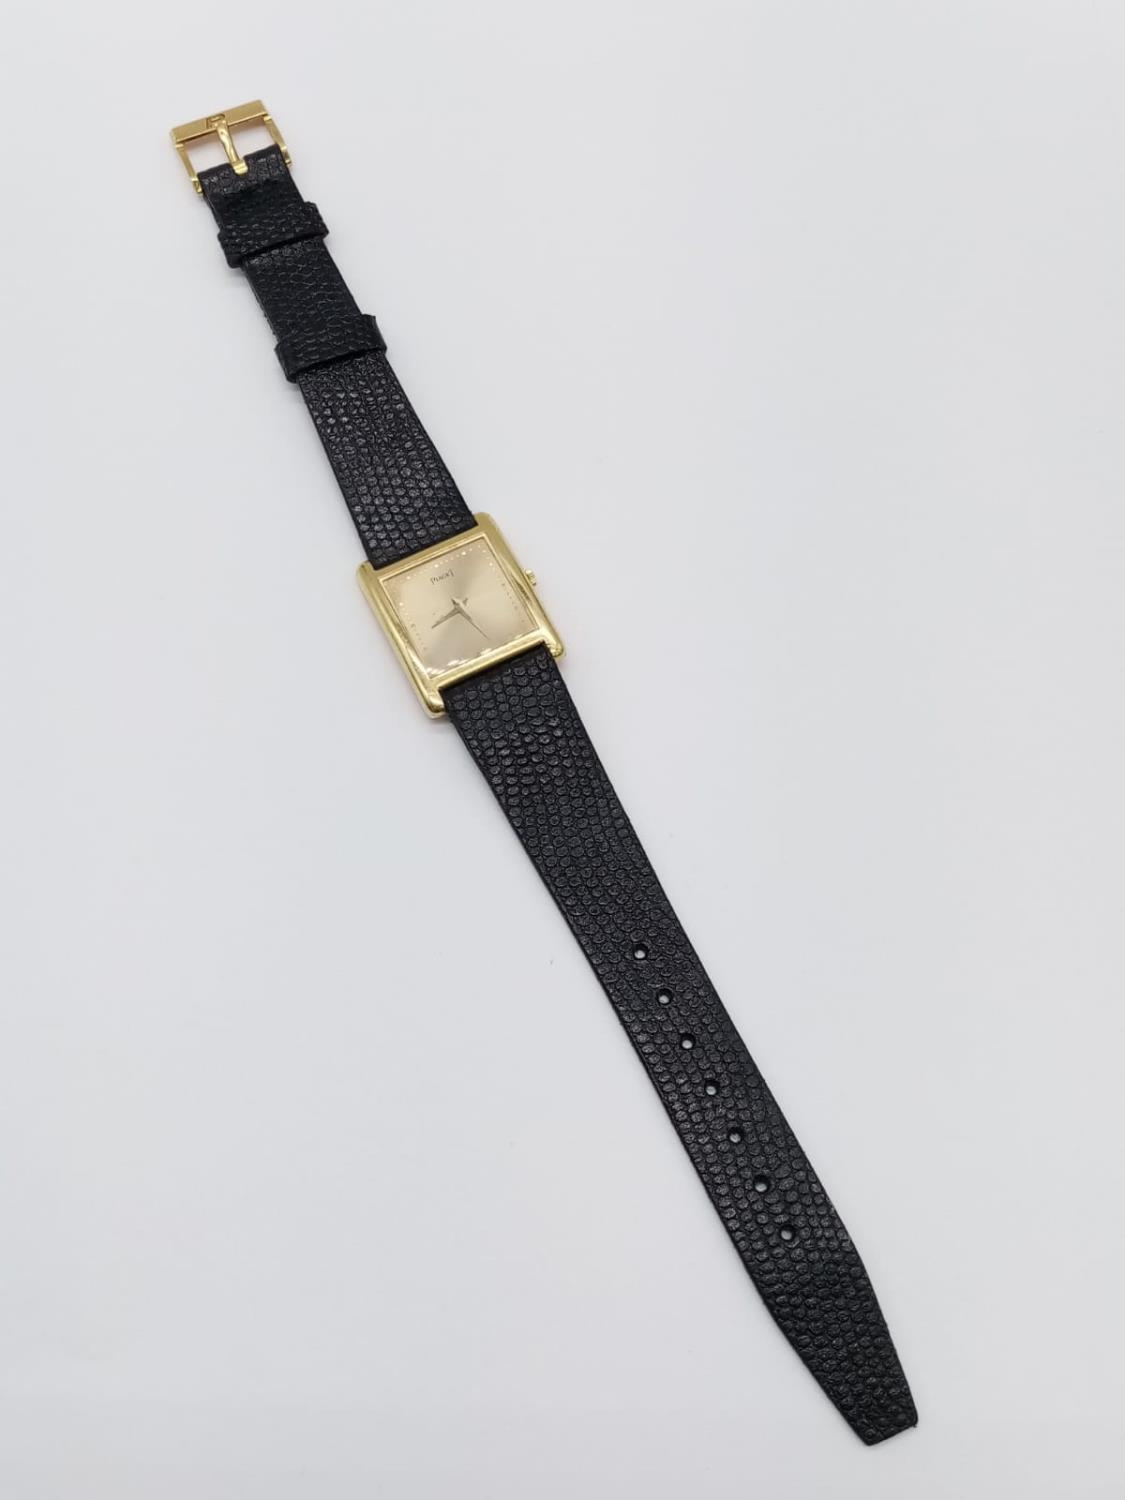 Vintage Plaget 18ct gold ladies watch with square face (22mm) and leather strap - Image 5 of 10